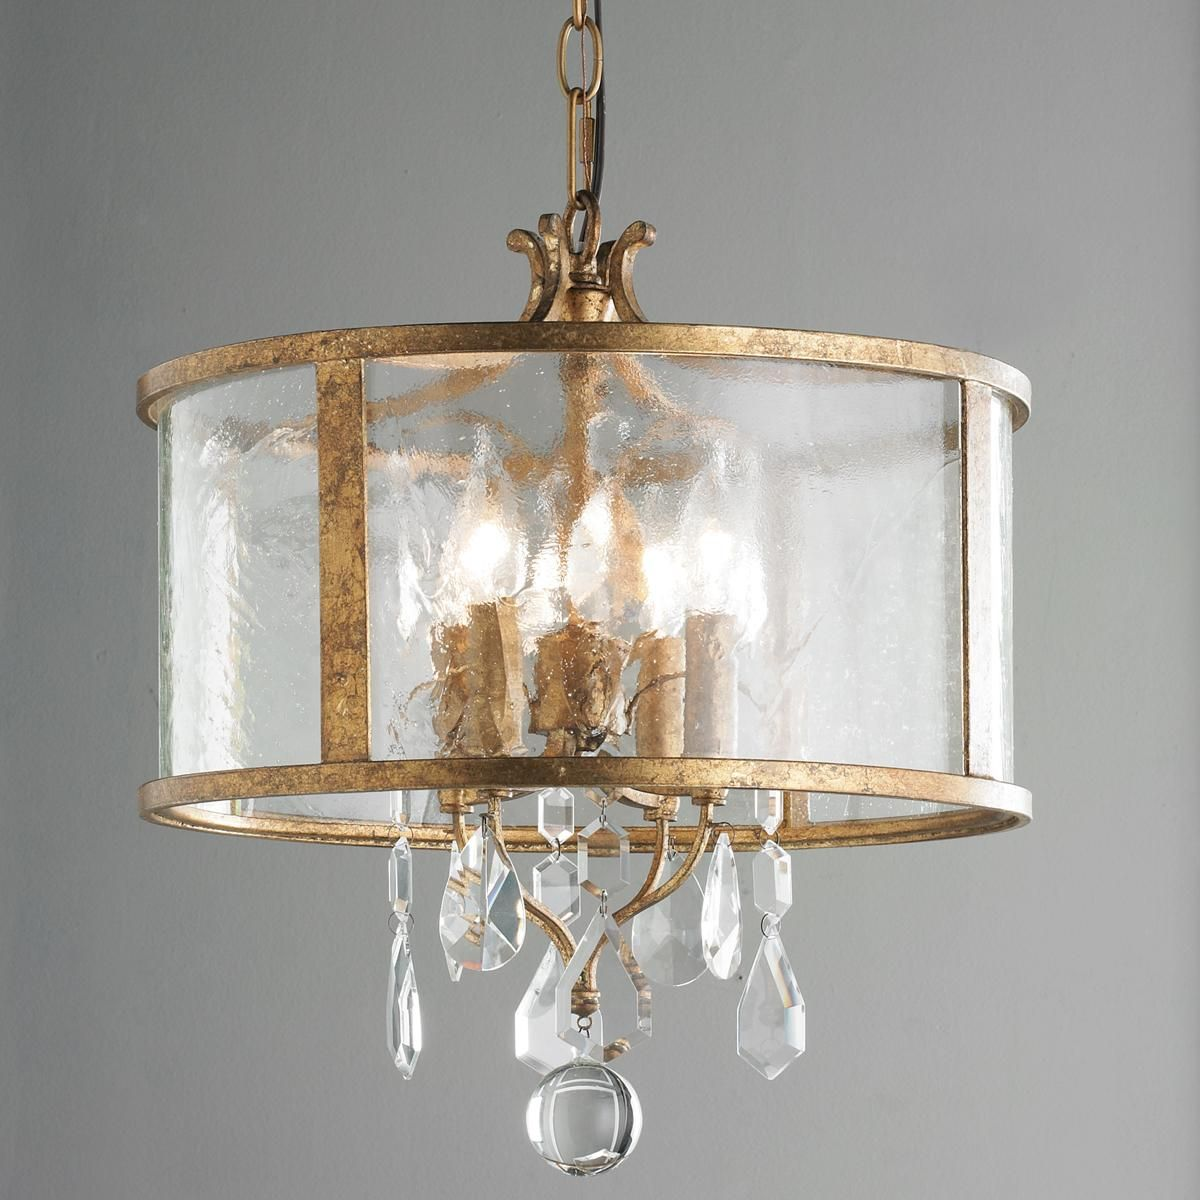 17 Best Ideas About Drum Shade Chandelier On Pinterest: Vintage Modern Crystal Mini Chandelier